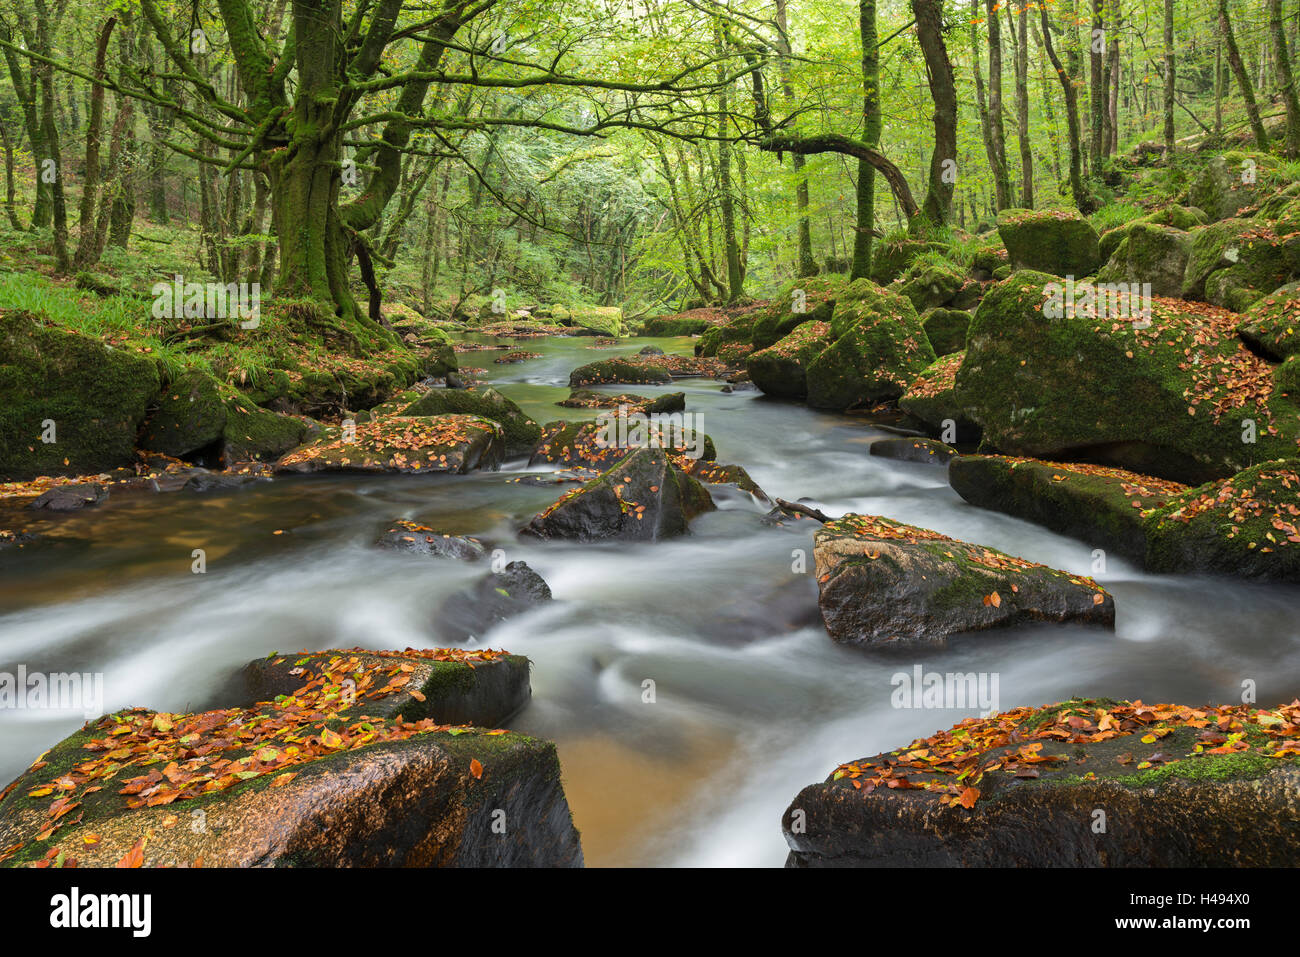 The River Fowey at Golitha Falls on Bodmin Moor, Cornwall, England. Autumn (September) 2013. - Stock Image